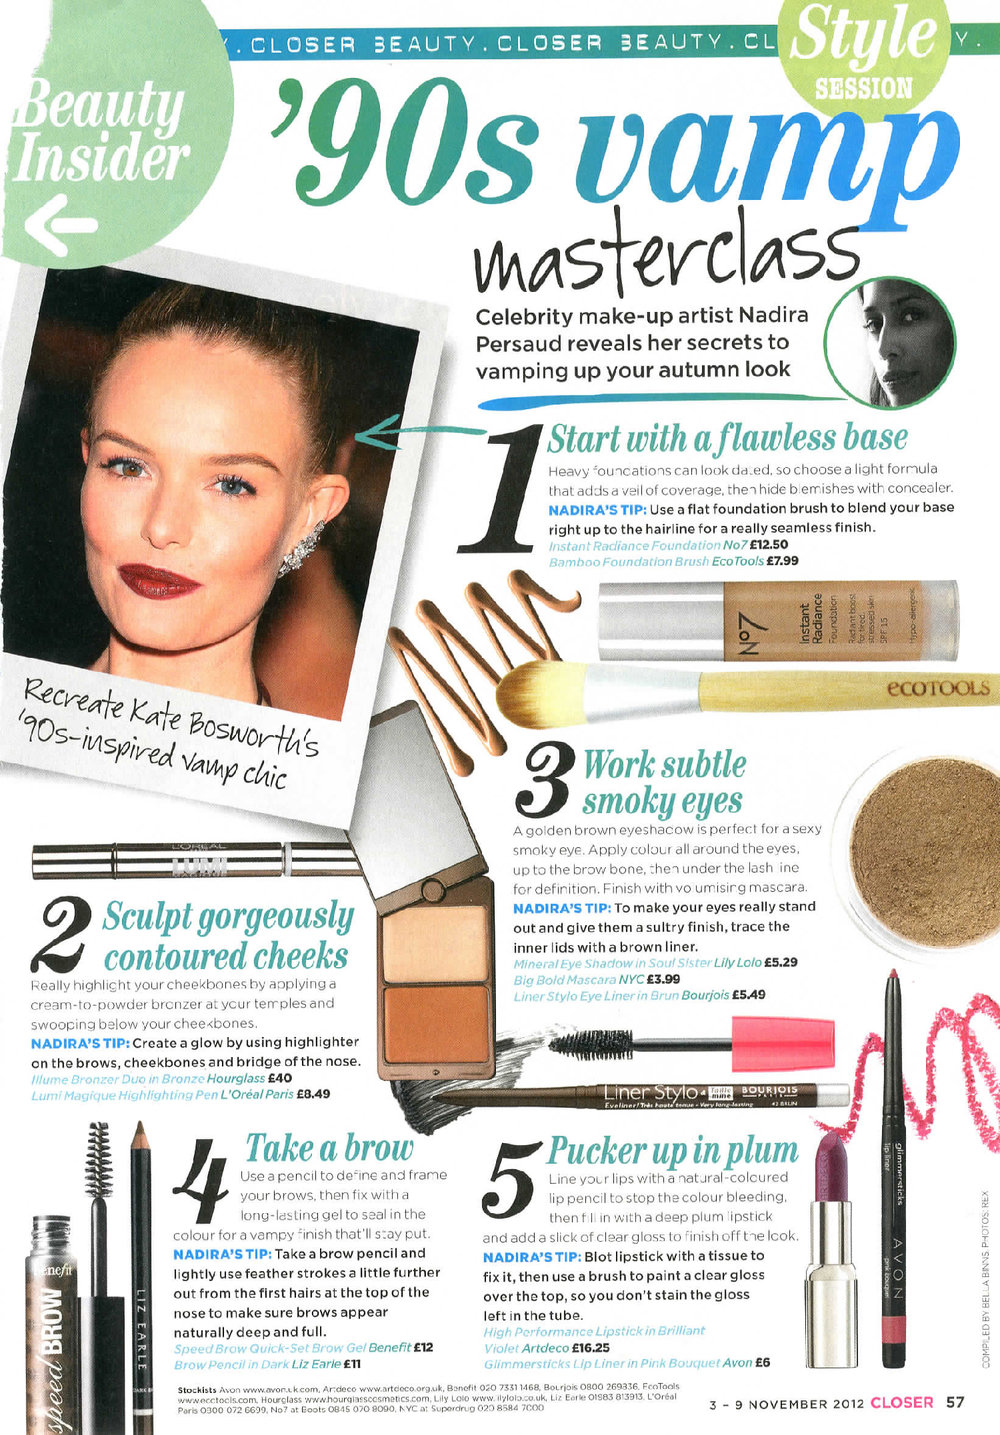 Closer Magazine 90's Vamp Masterclass